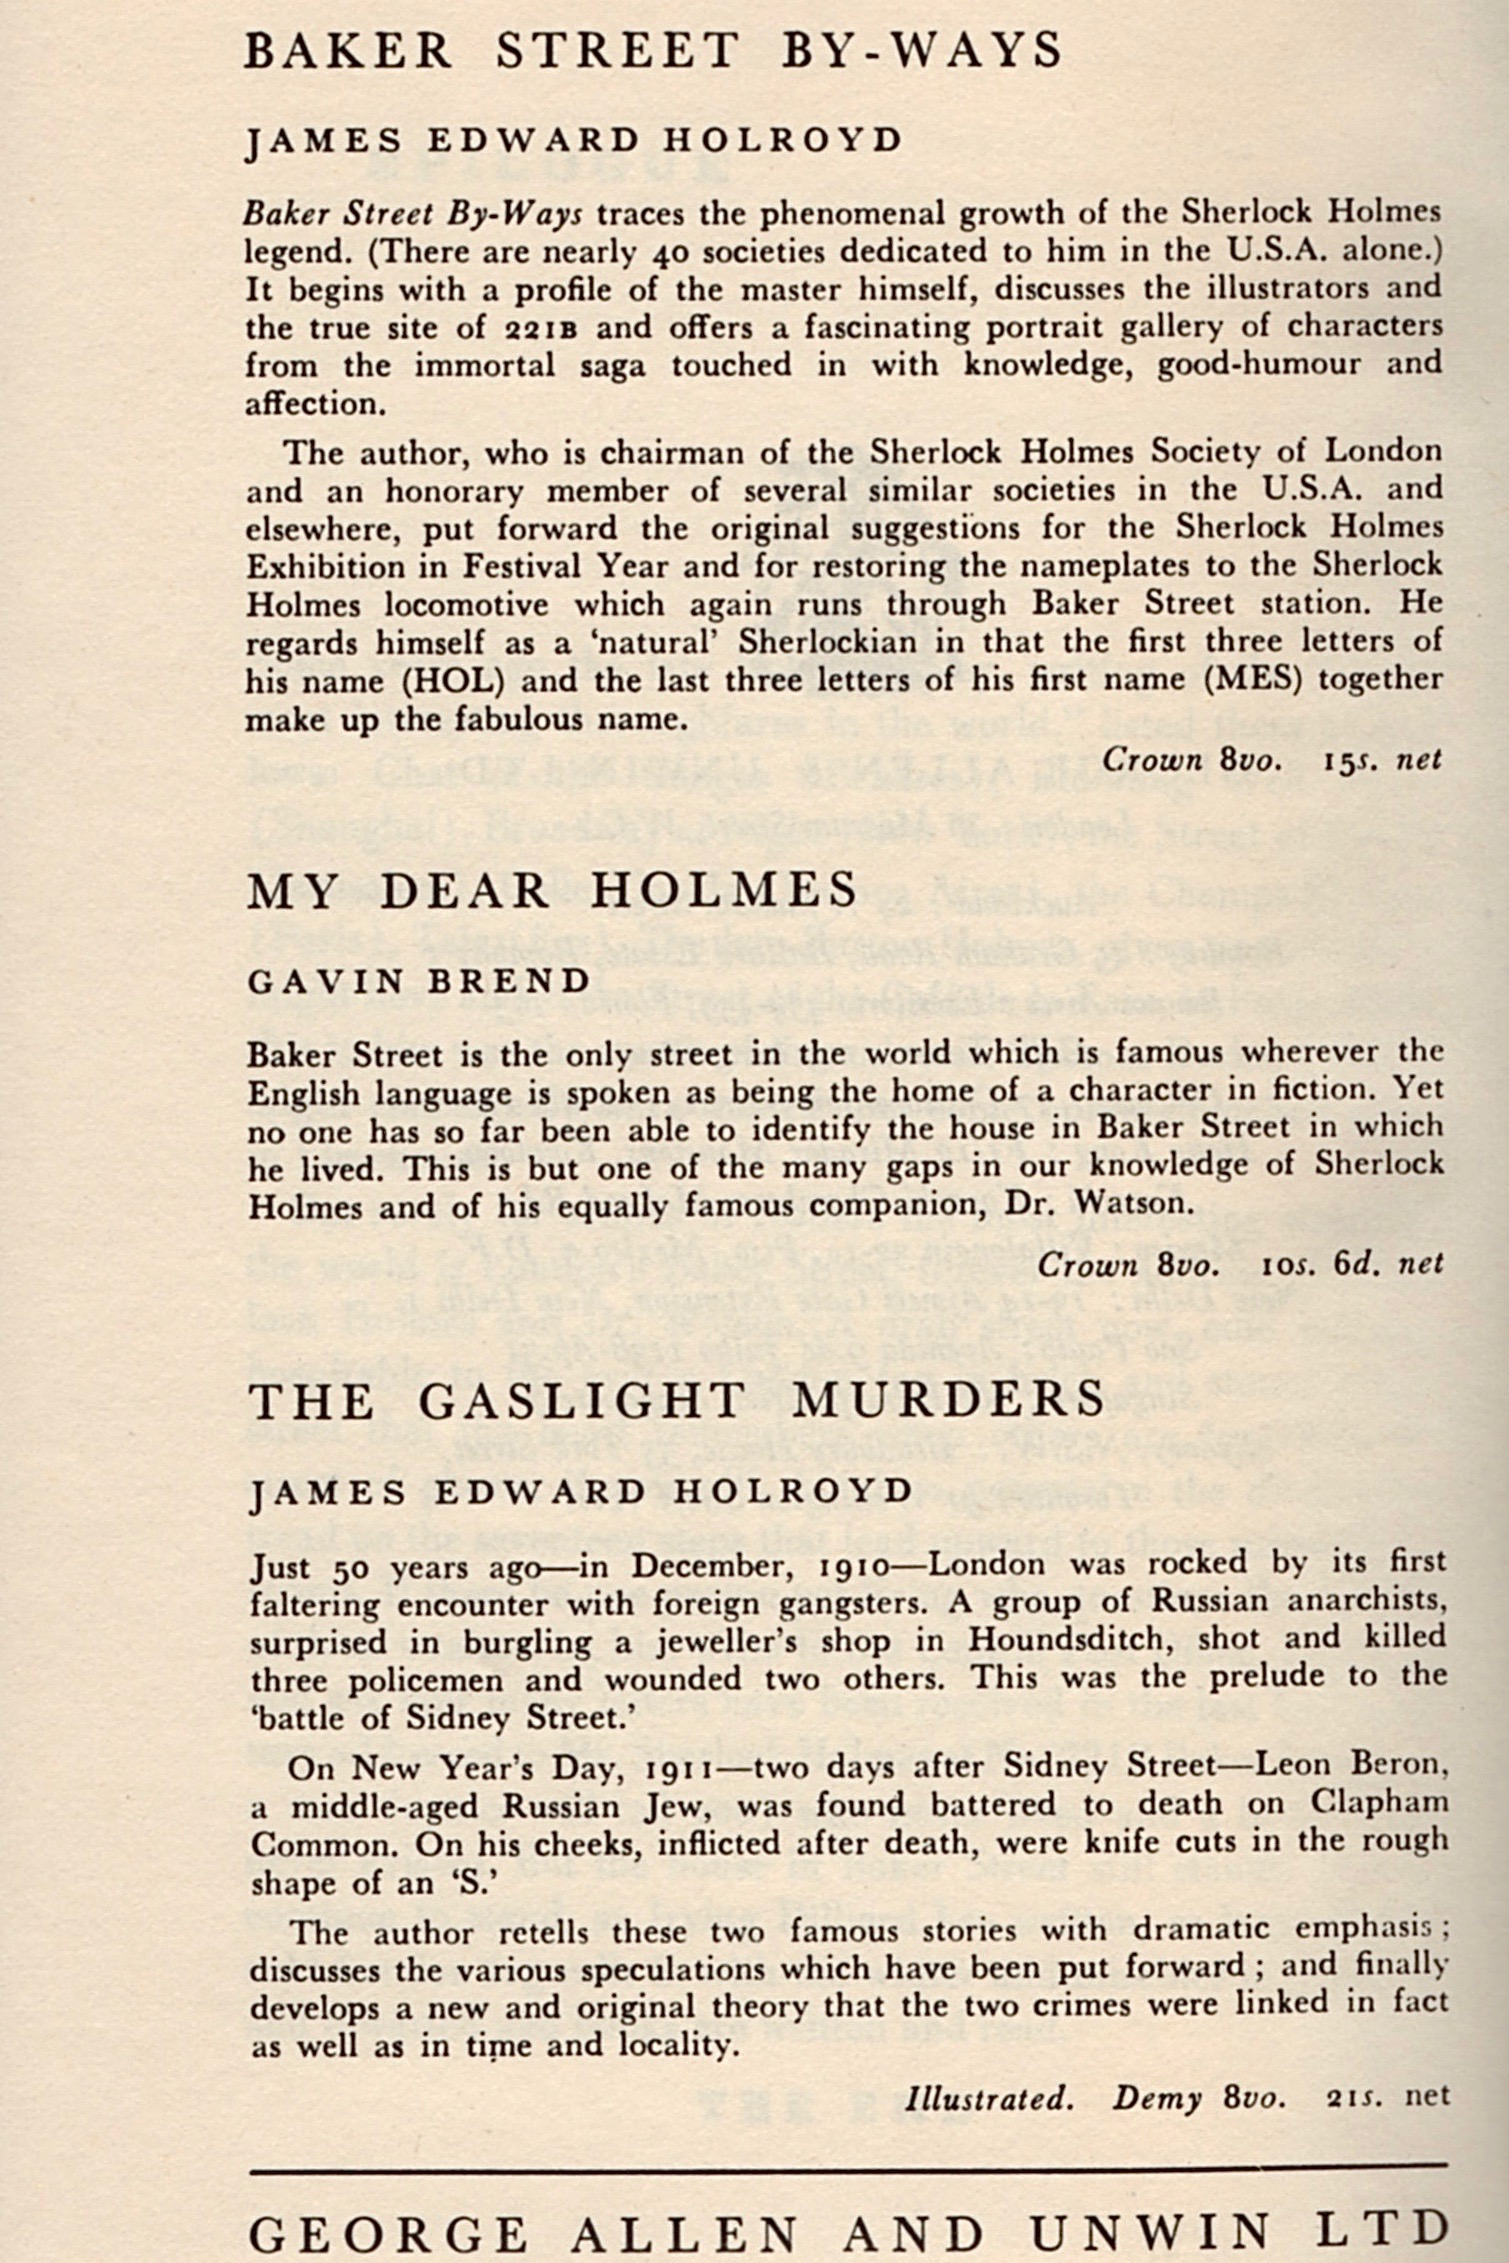 Allen and Unwin added a page of ads for their other books at the end of Starrett's text.